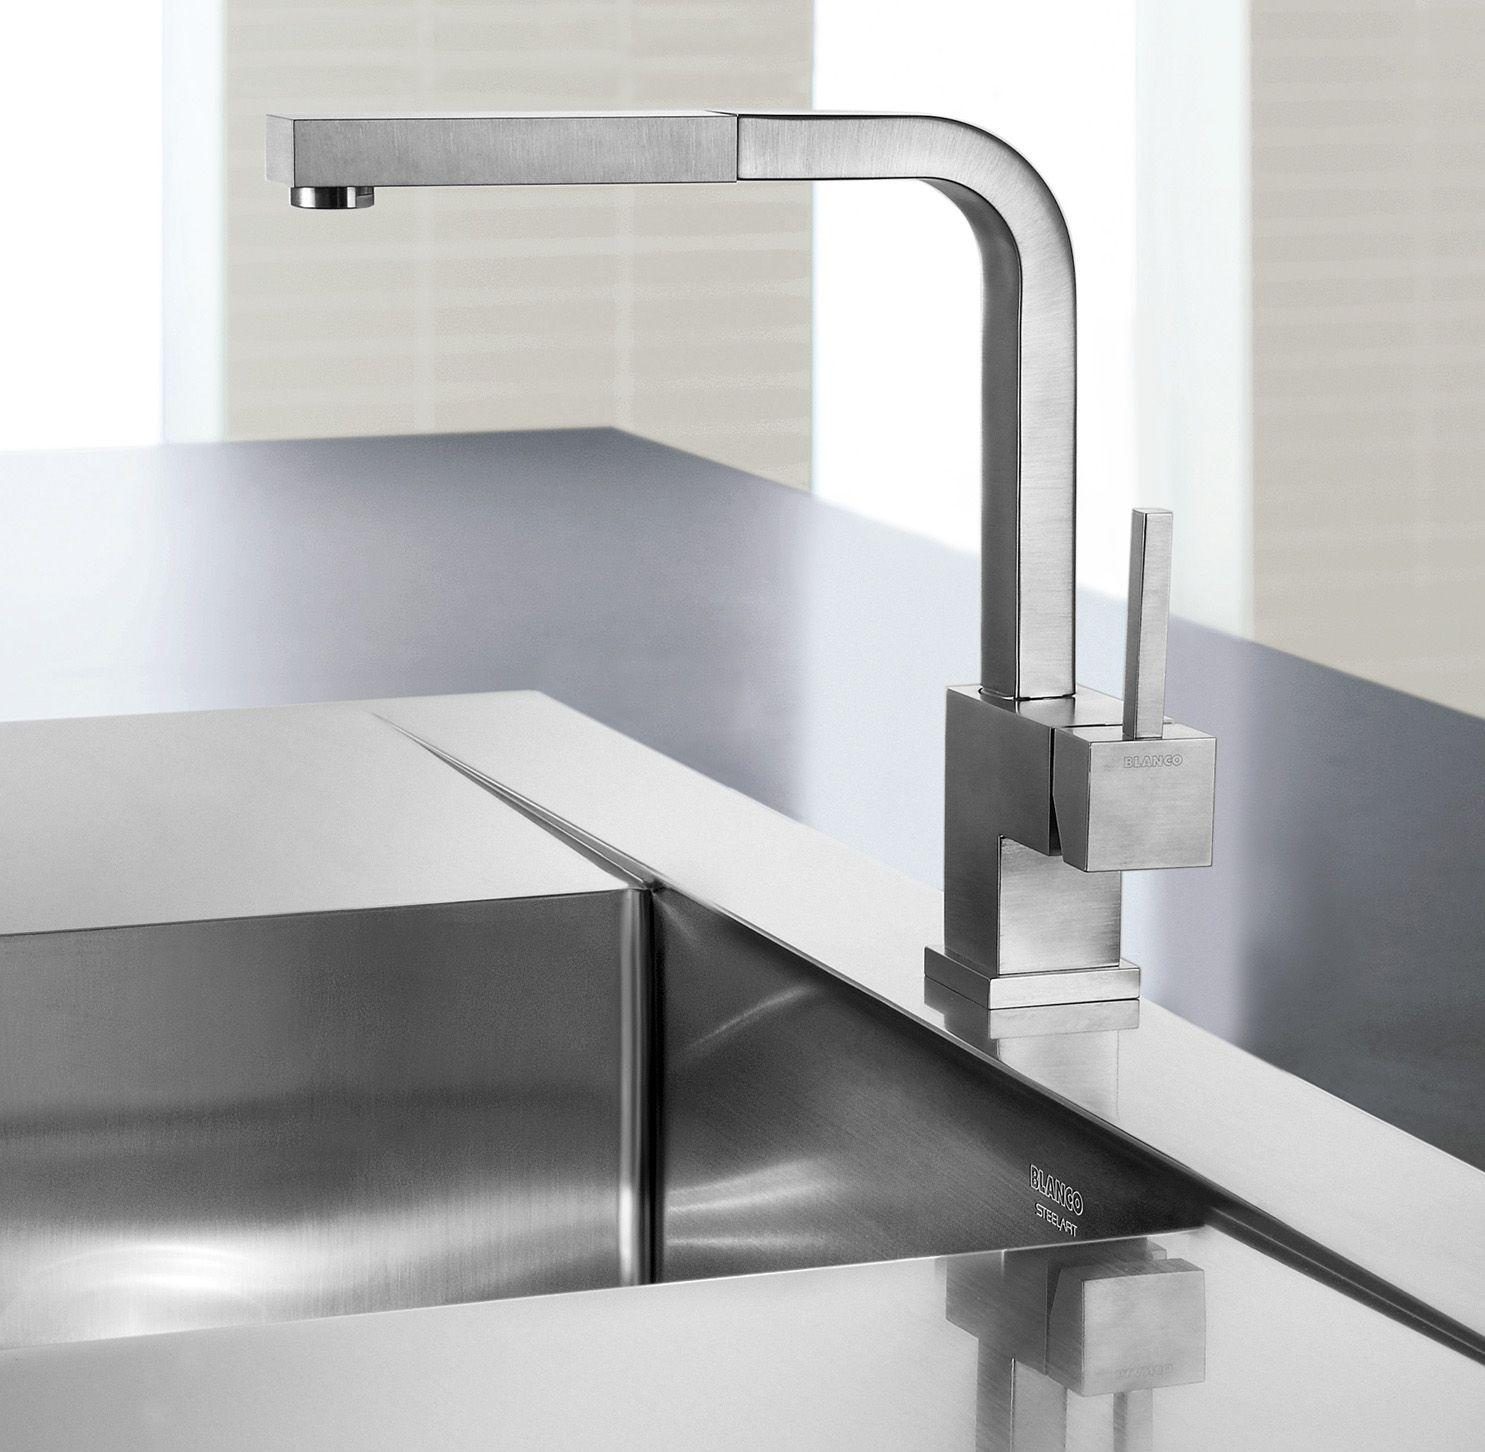 Image of: Modern Kitchen Faucet Reviews